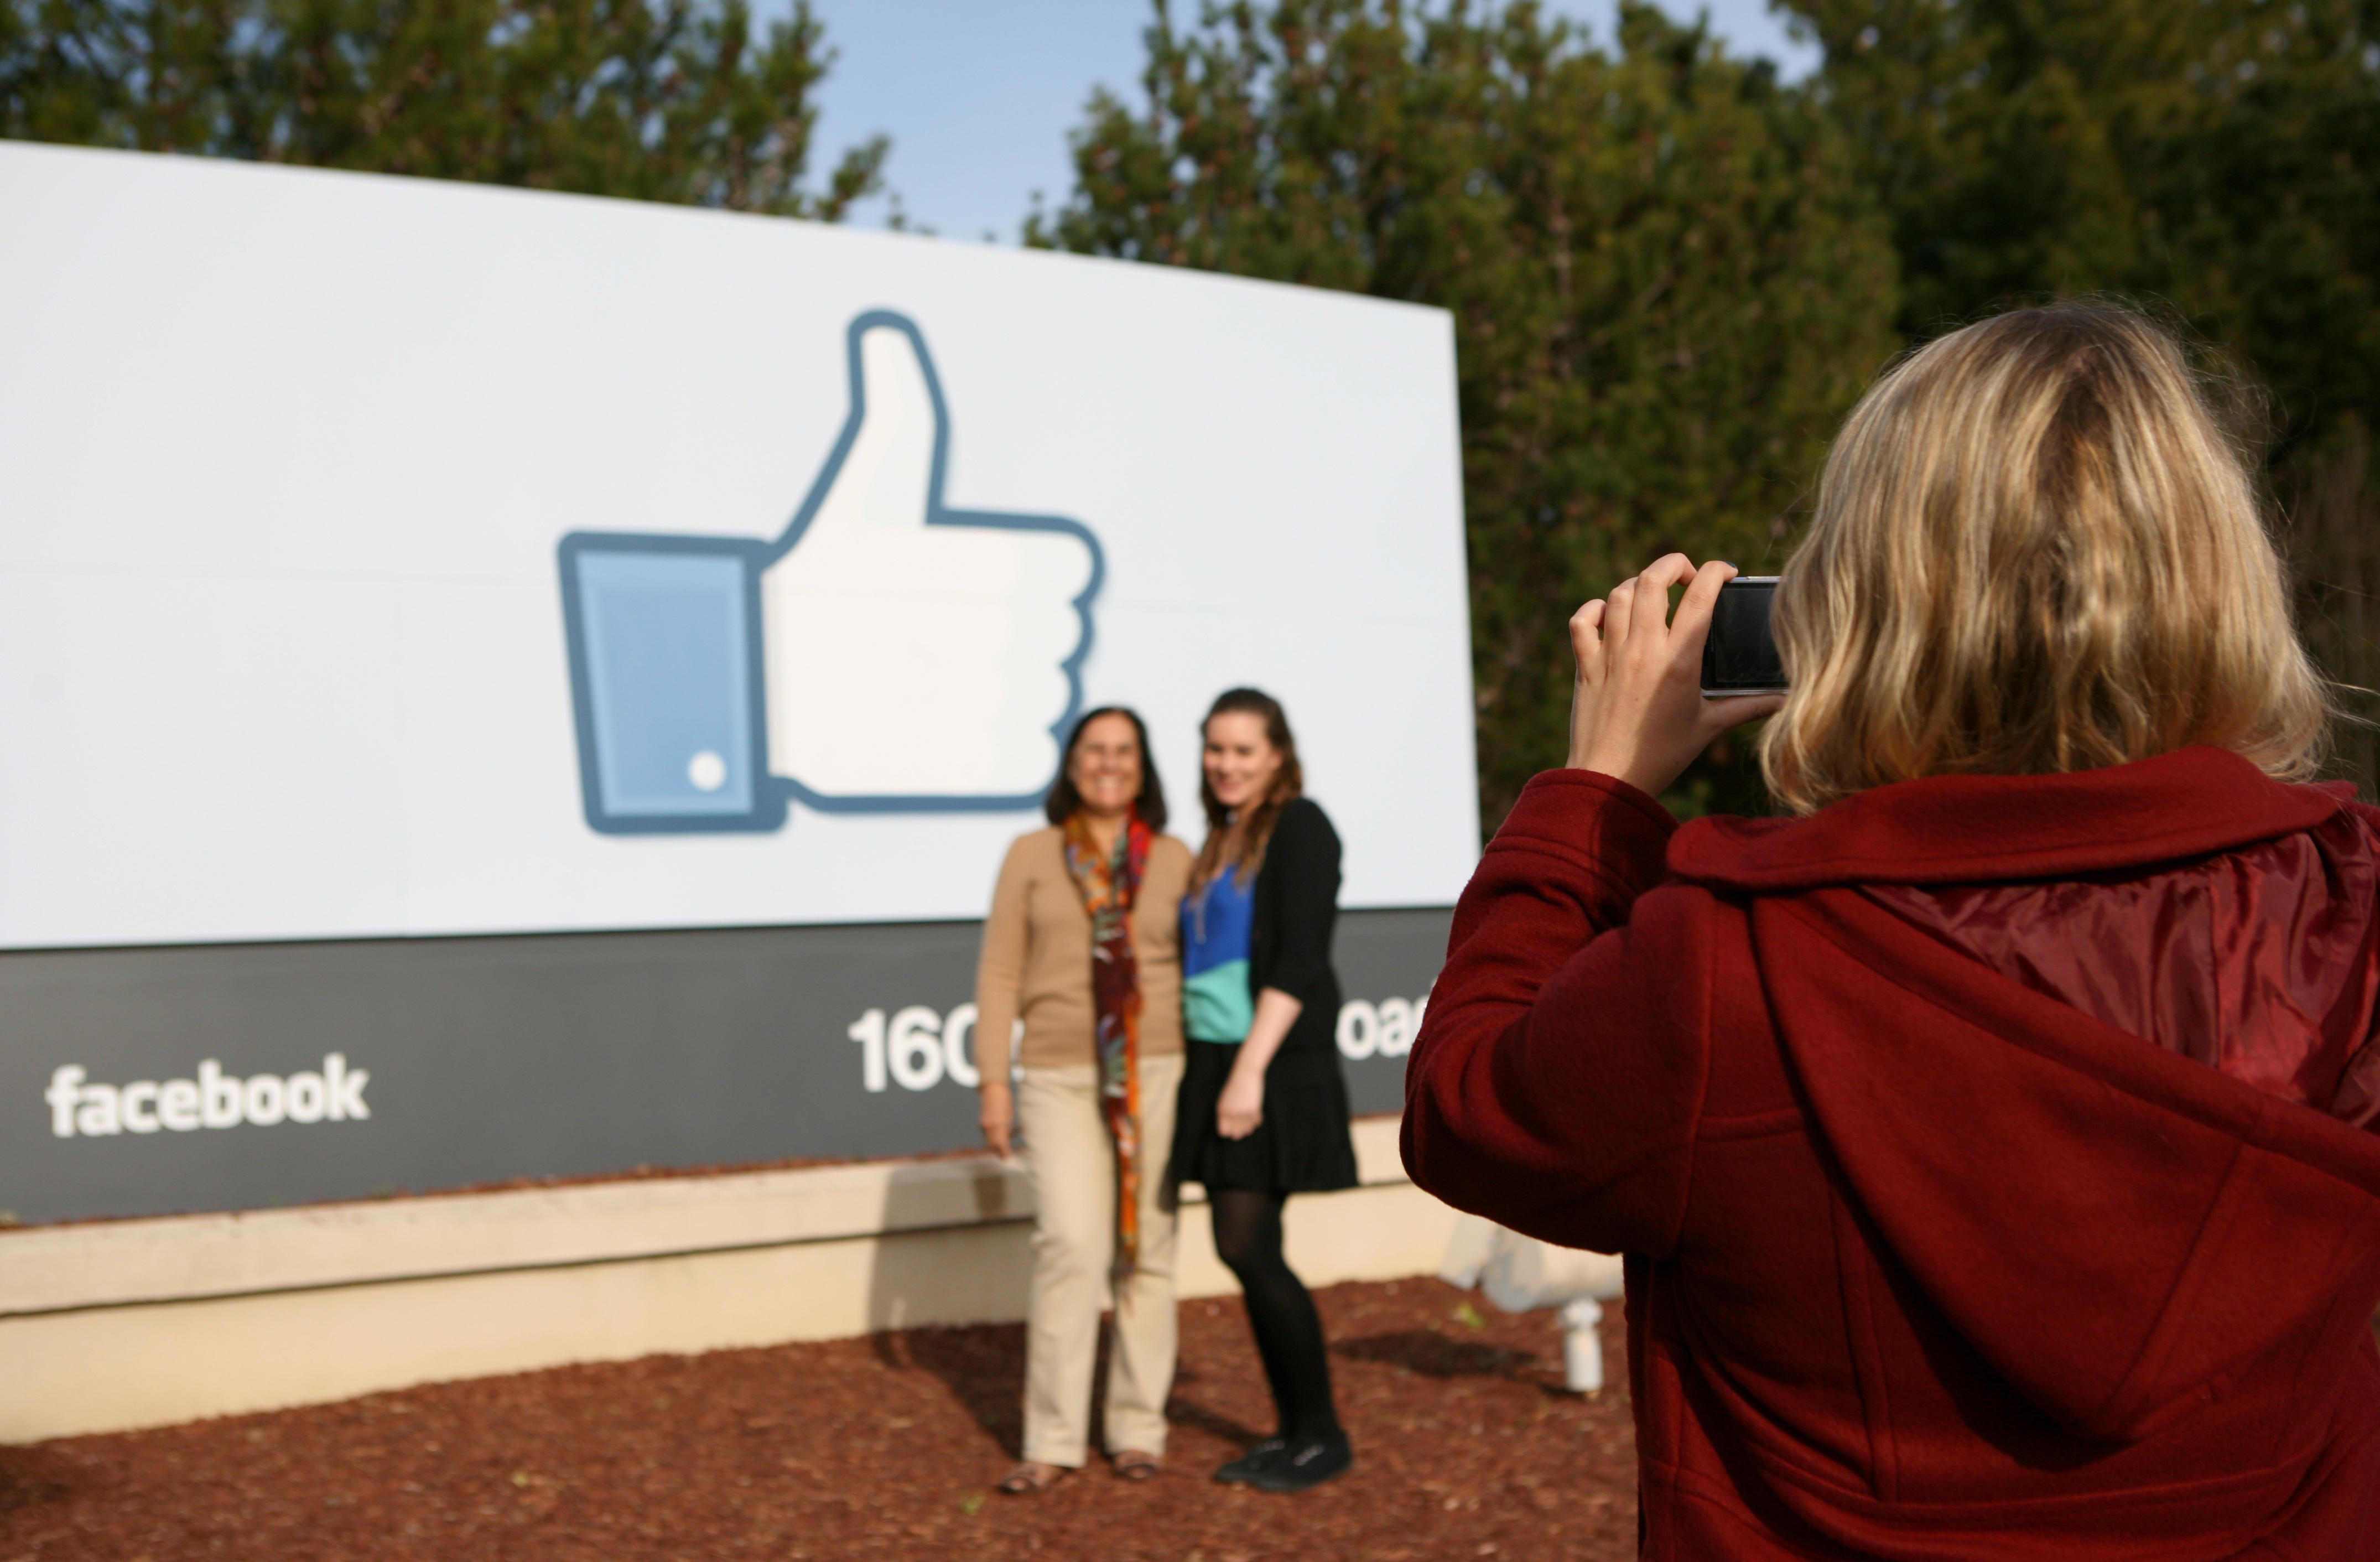 Visitors of Facebook take a pose in fron